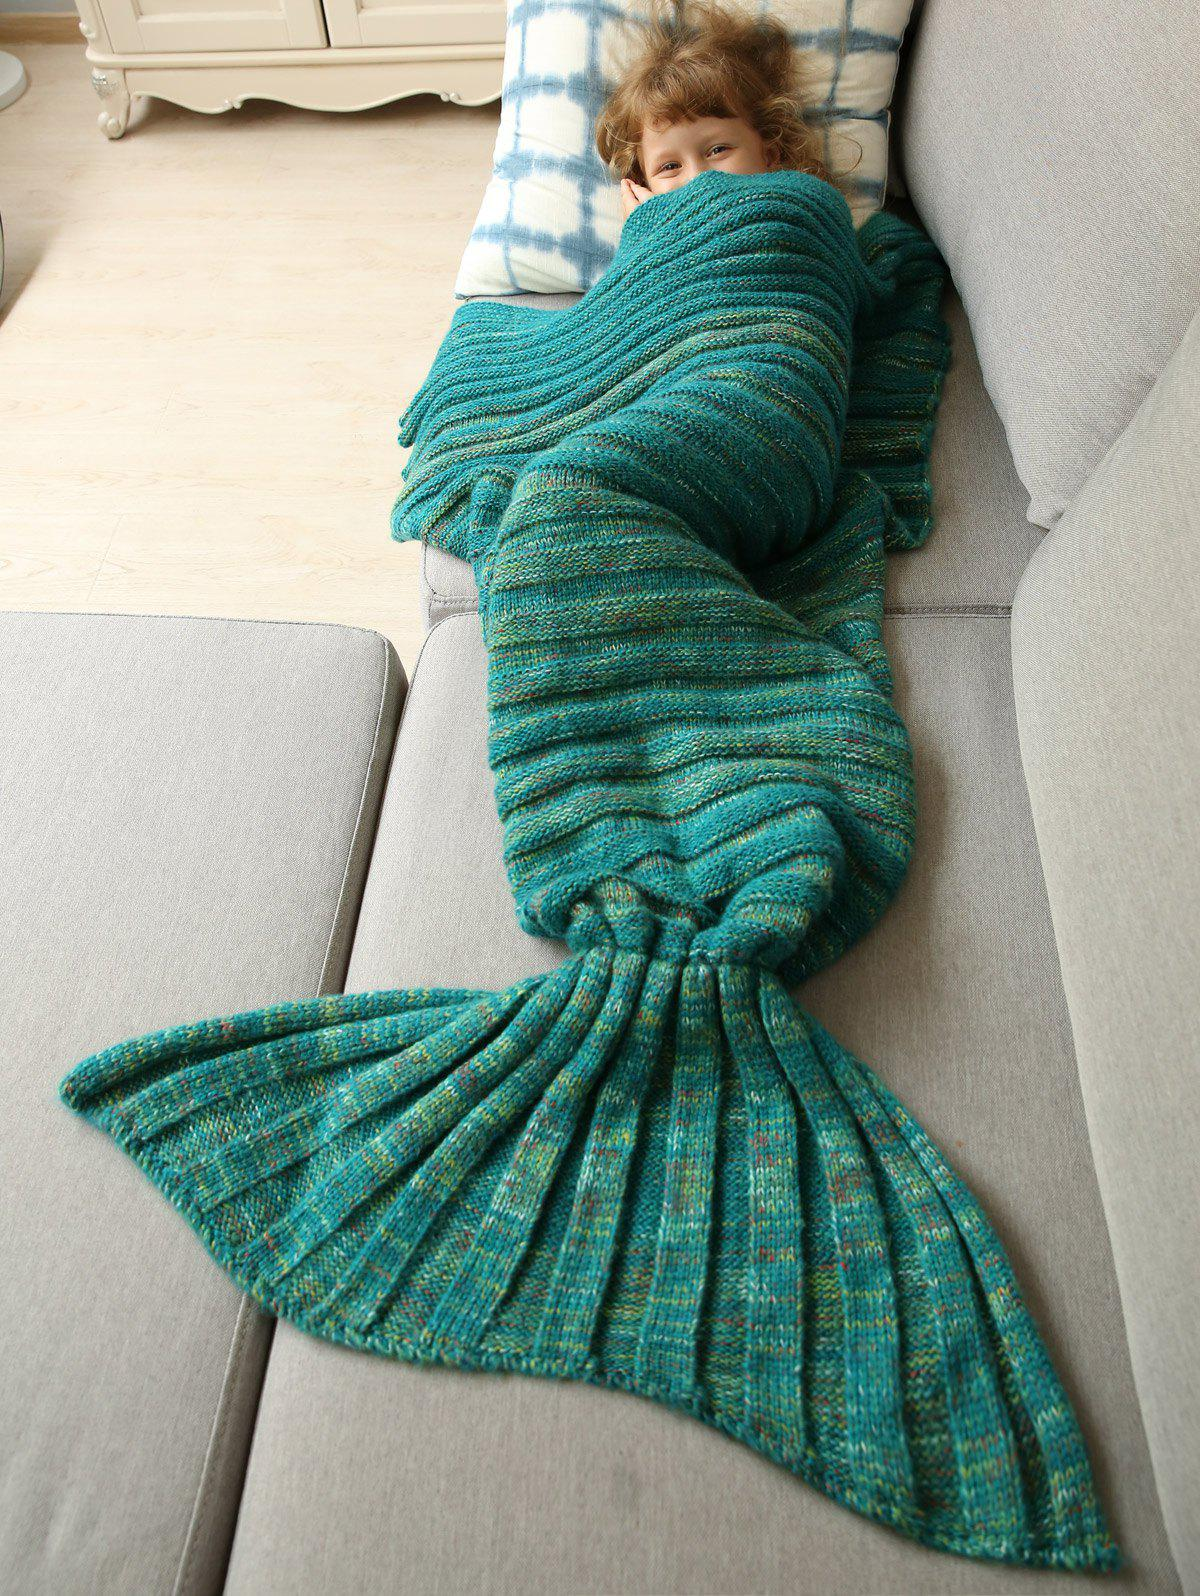 Bonne Qualité chaud kintted Wrap Mermaid Tail Blanket For Kids - Vert S